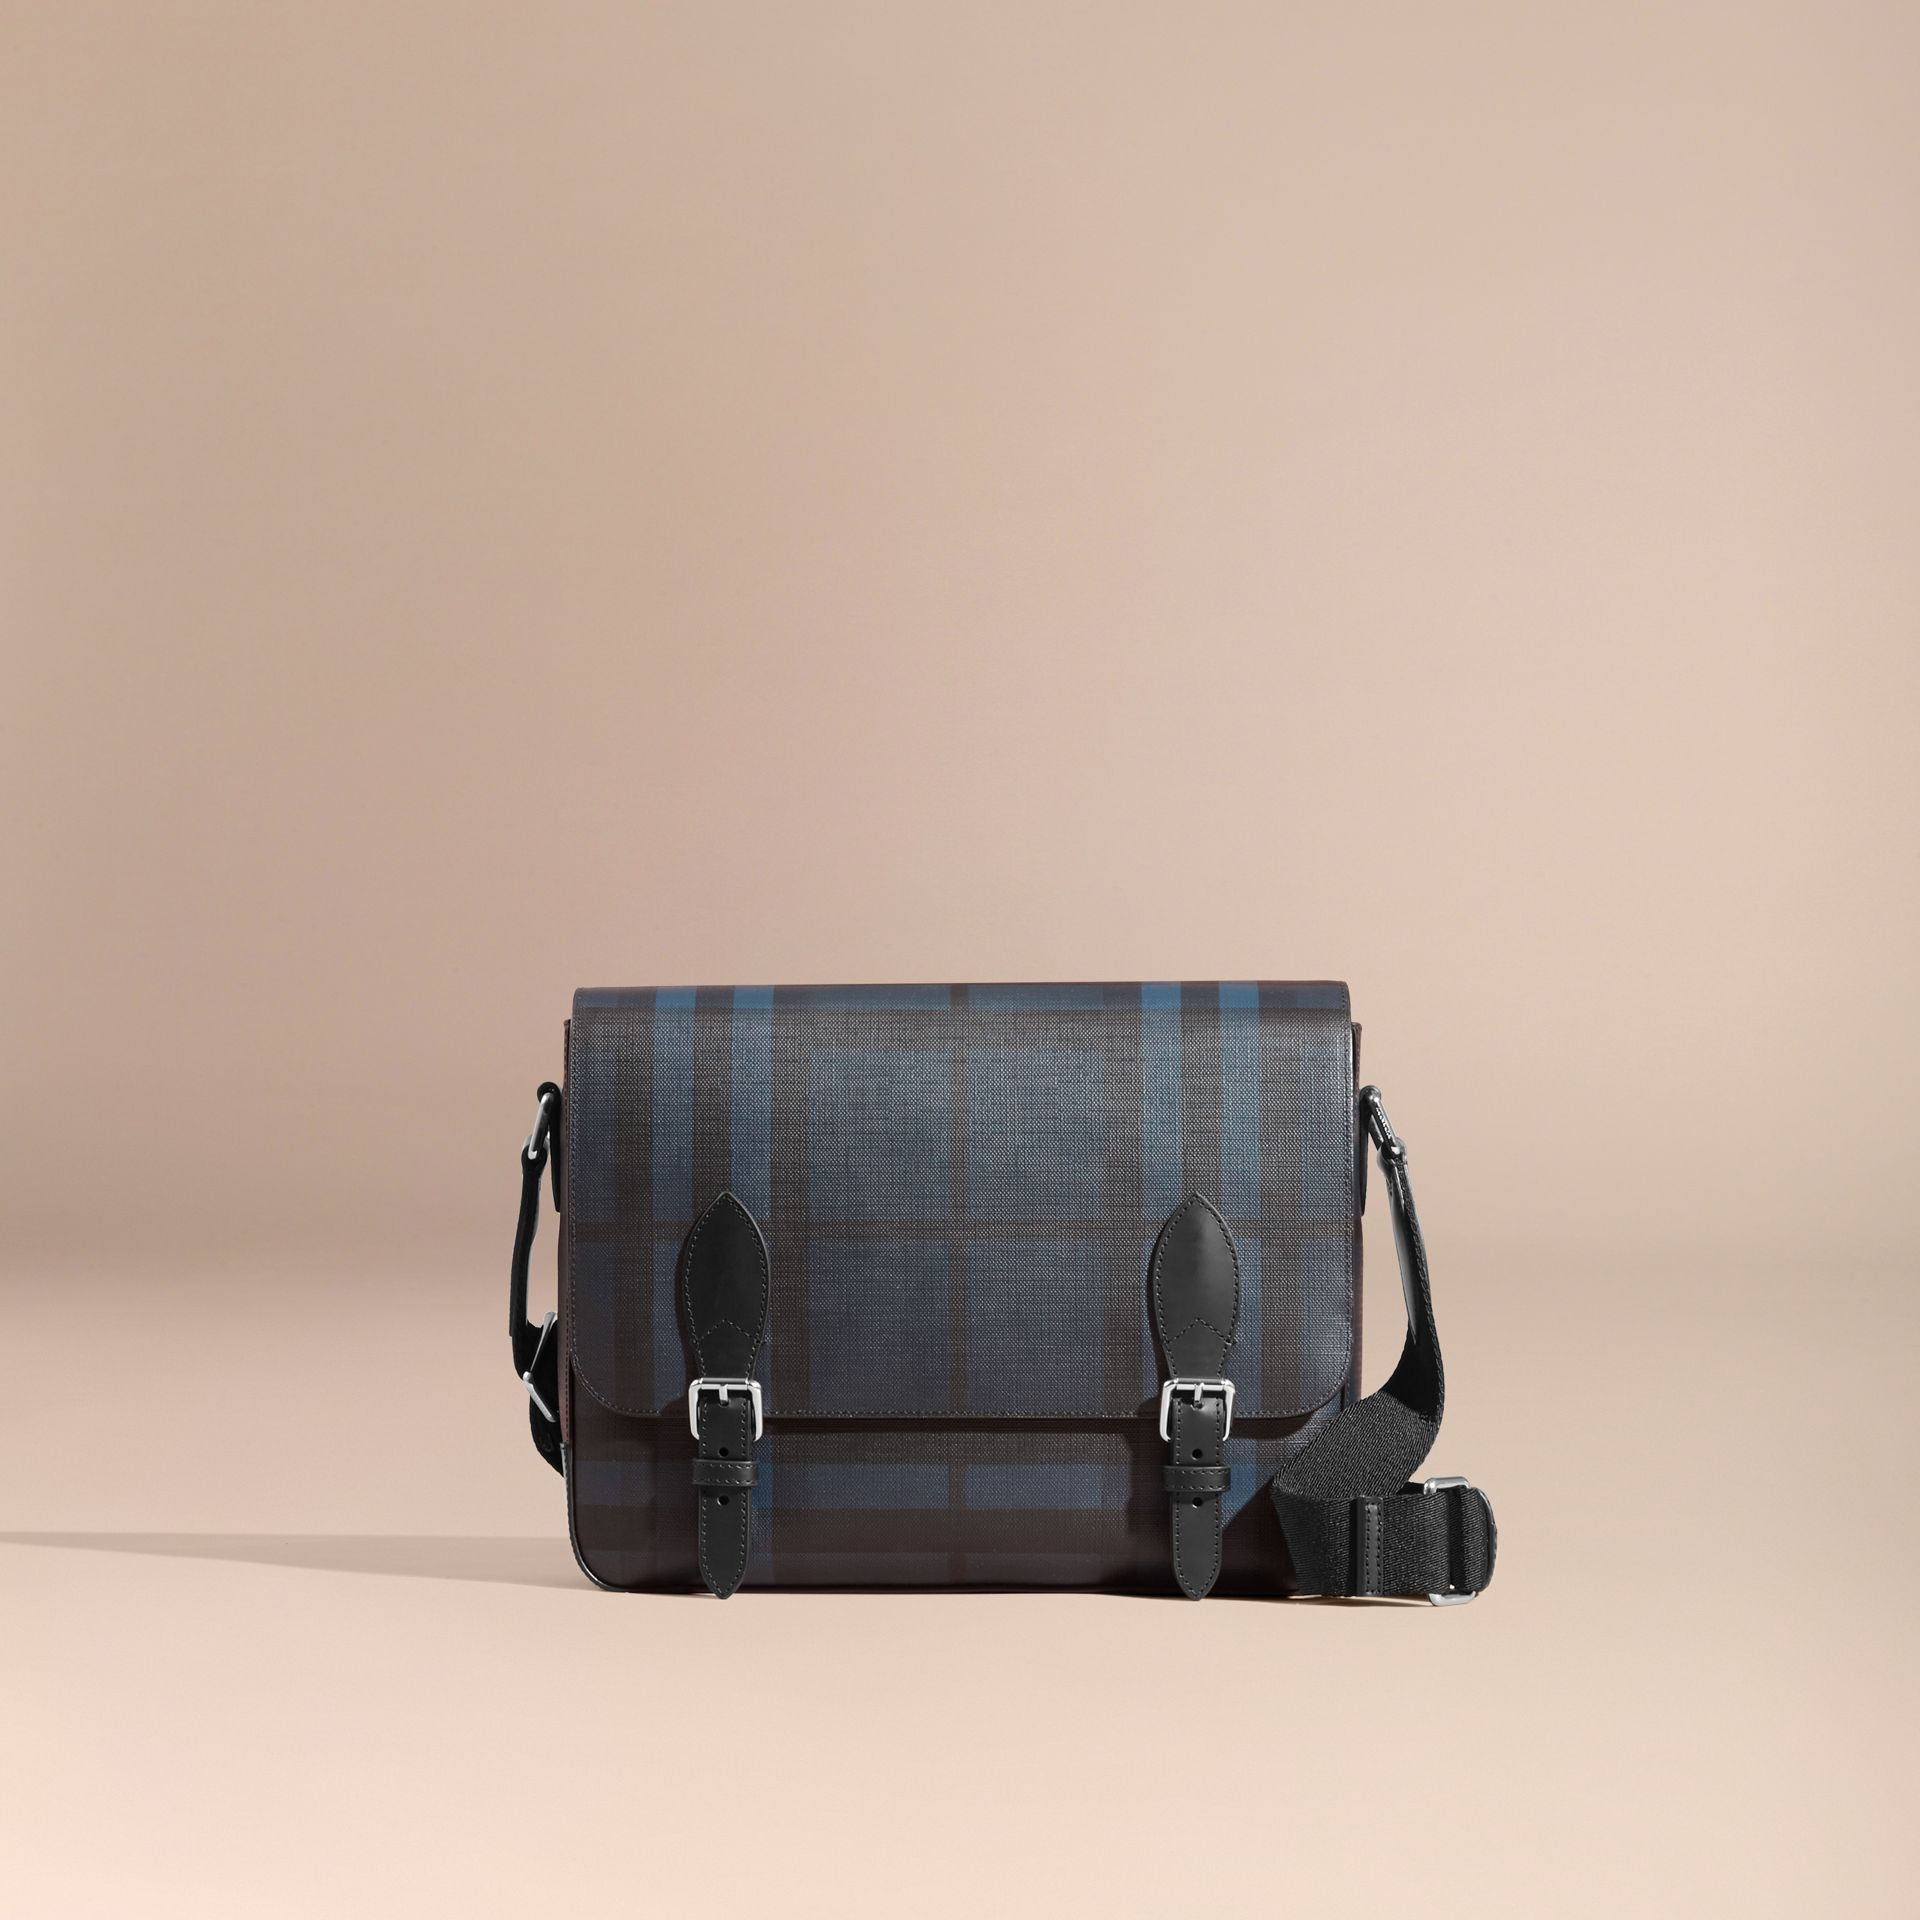 Medium Leather Trim London Check Messenger Bag in Navy/black - Men | Burberry - gallery image 8